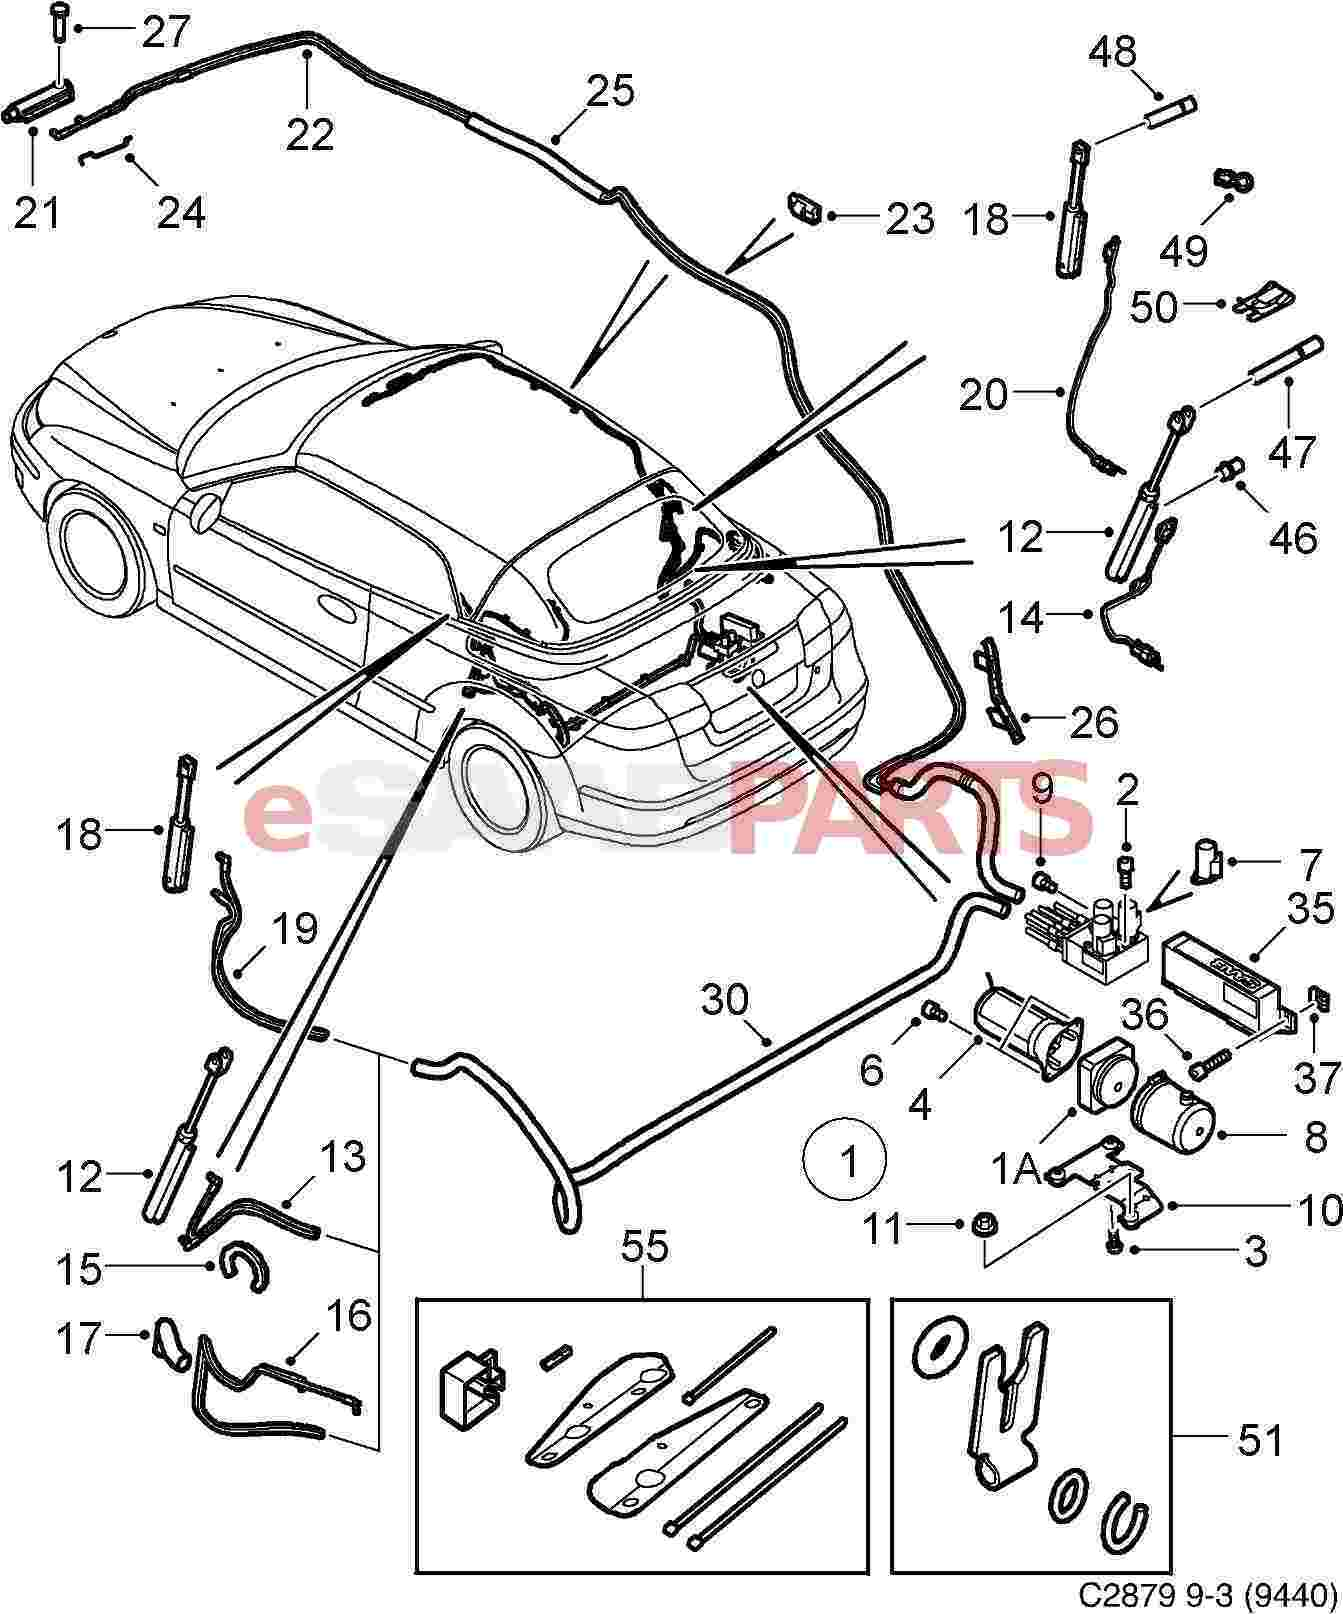 saab 9 3 parts diagram submited images